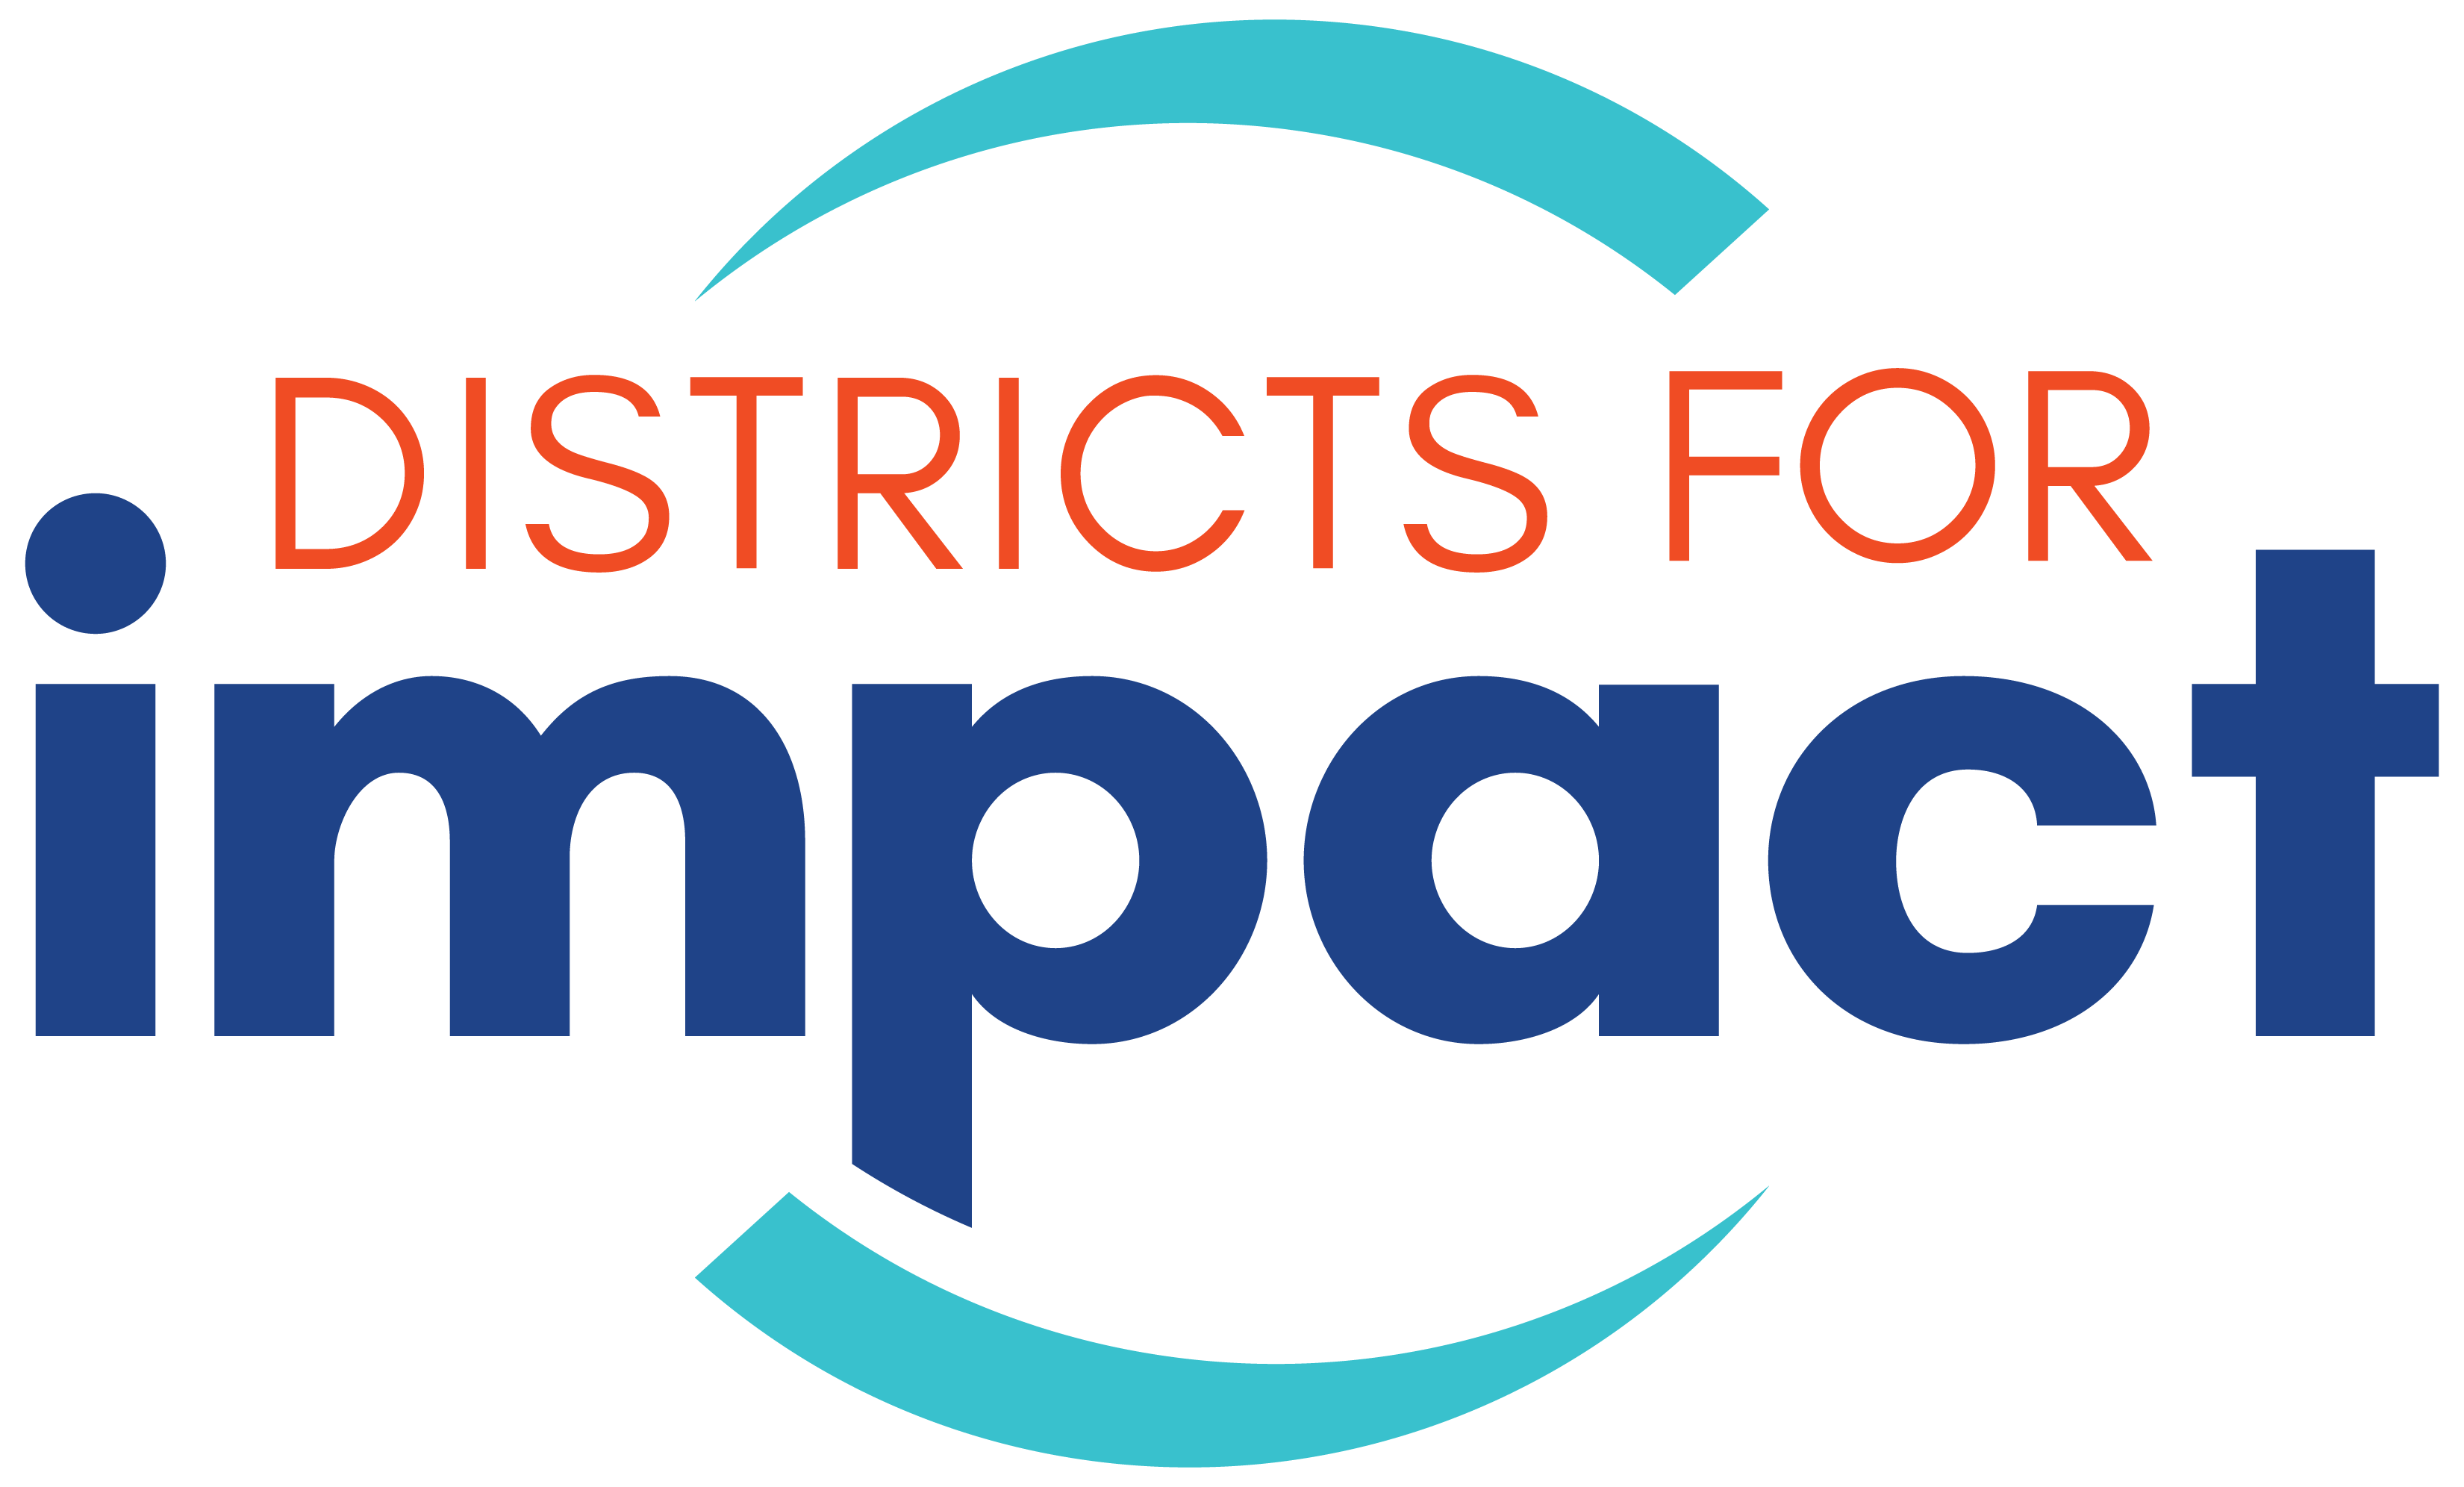 Districts for Impact